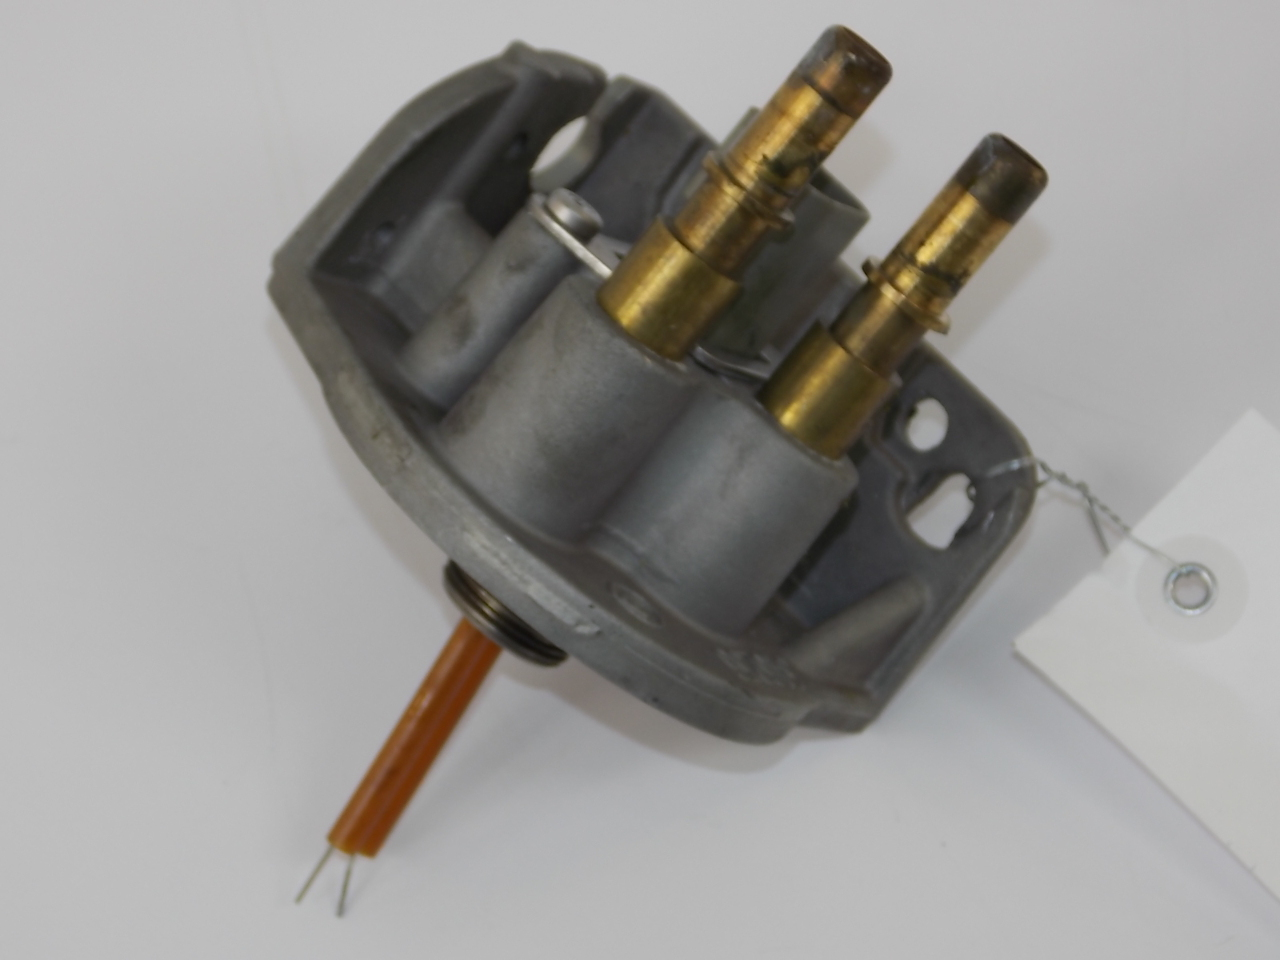 2002 evinrude 90 ficht wiring diagram sony xplod cdx gt330 fuel filter housing assy 5001252 2006